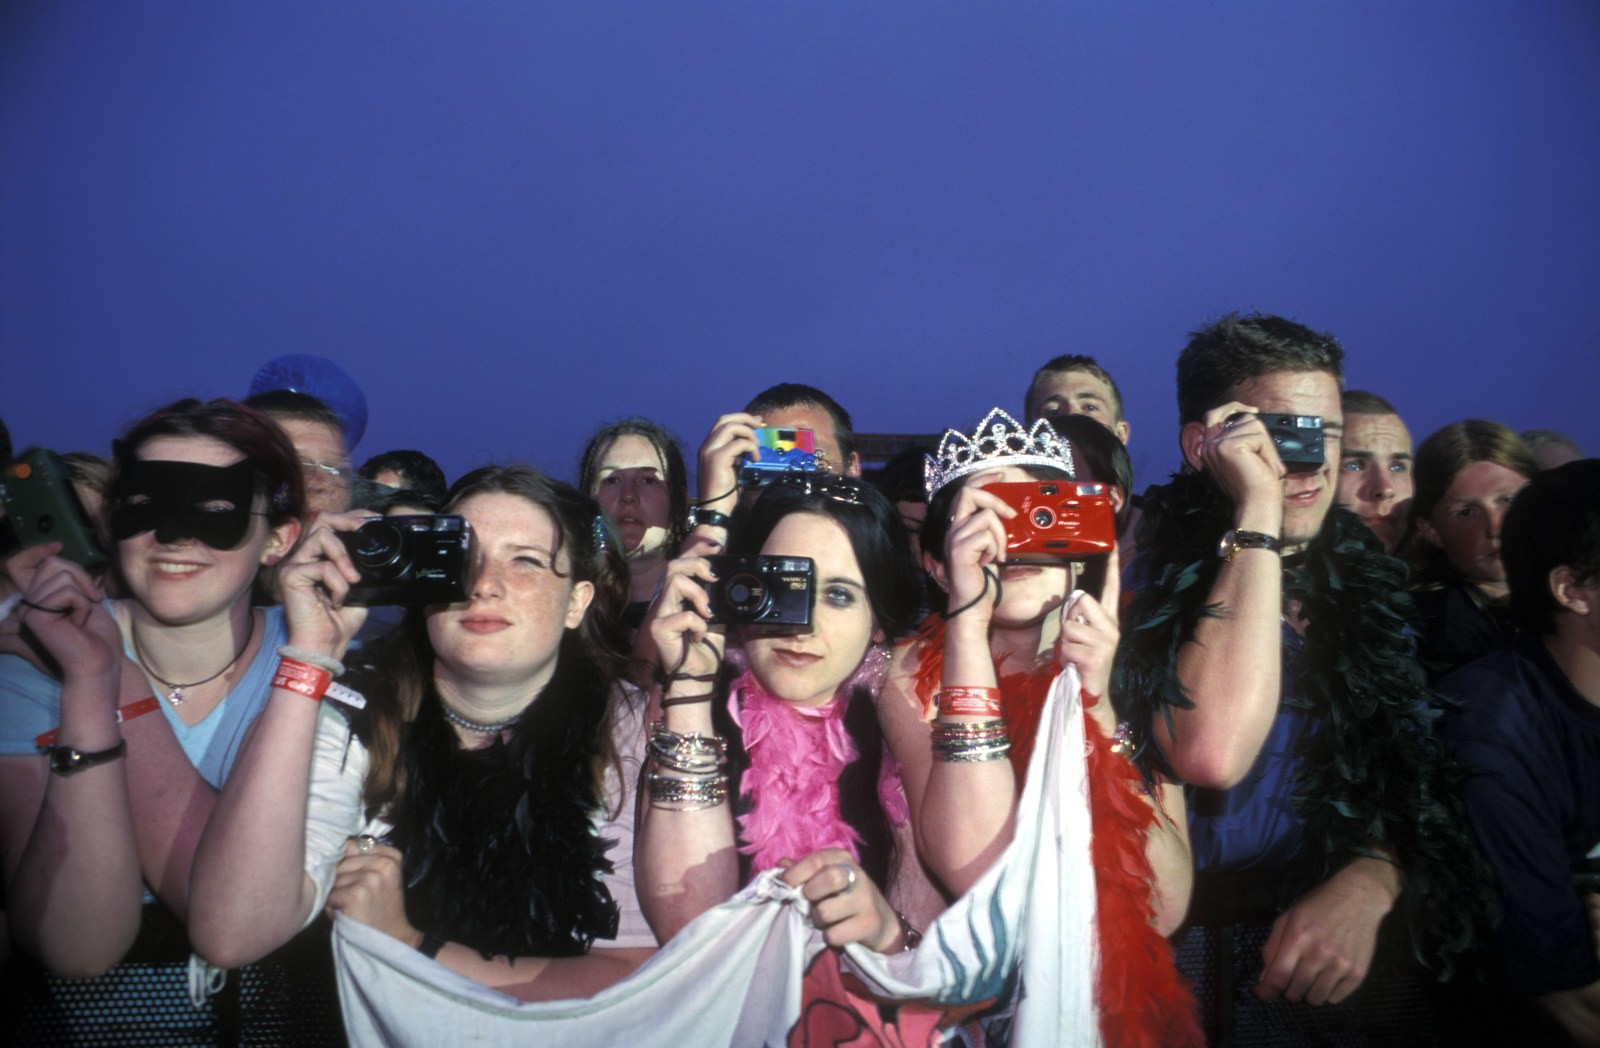 a row of people taking pictures on their cameras